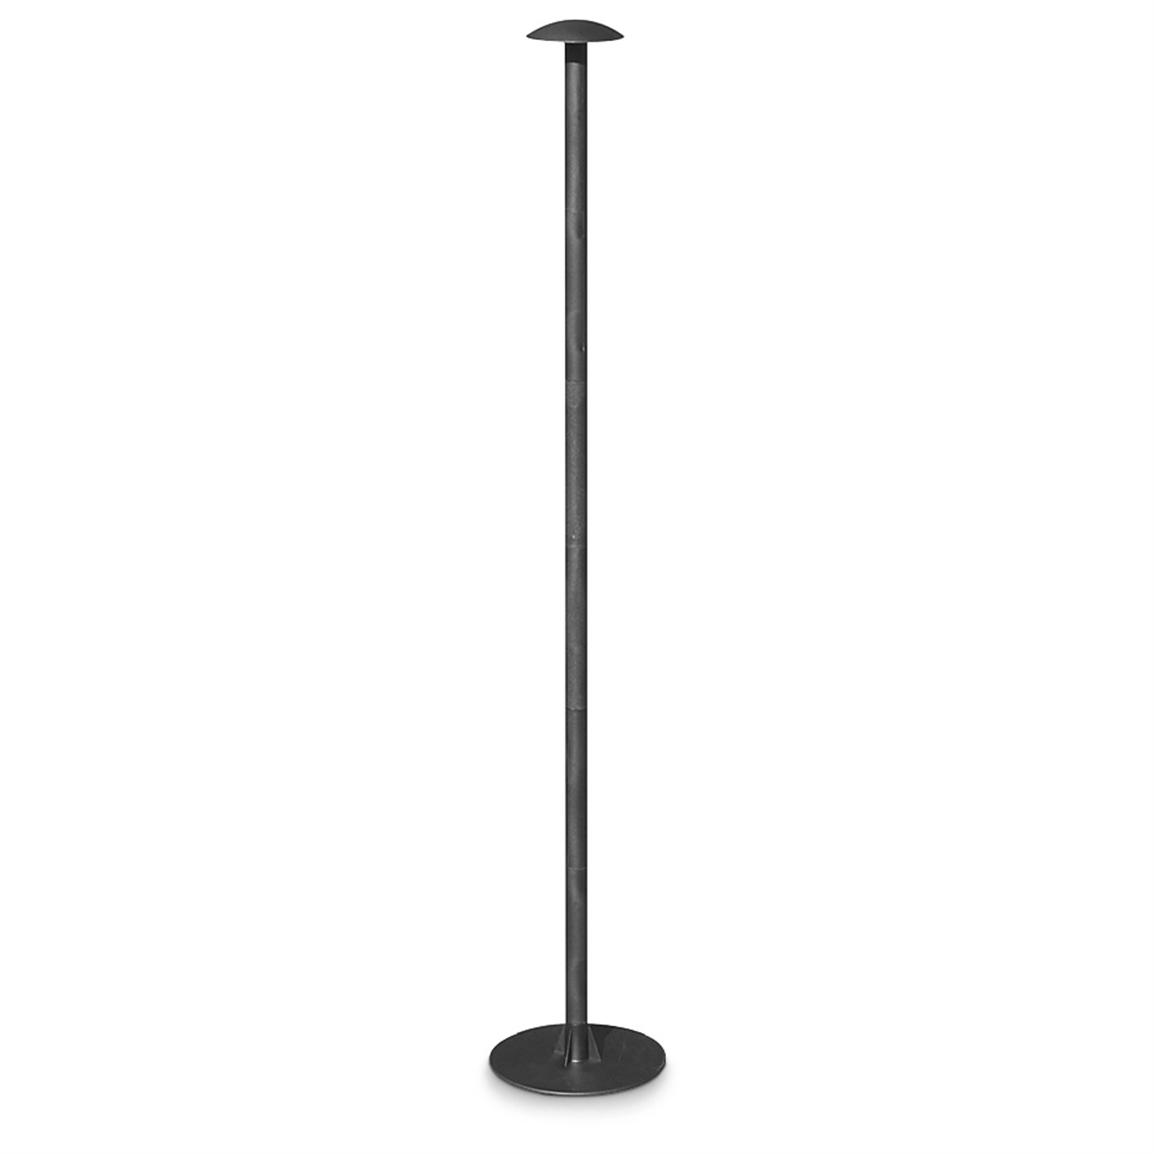 Classic Accessories® Adjustable Boat Cover Support Pole